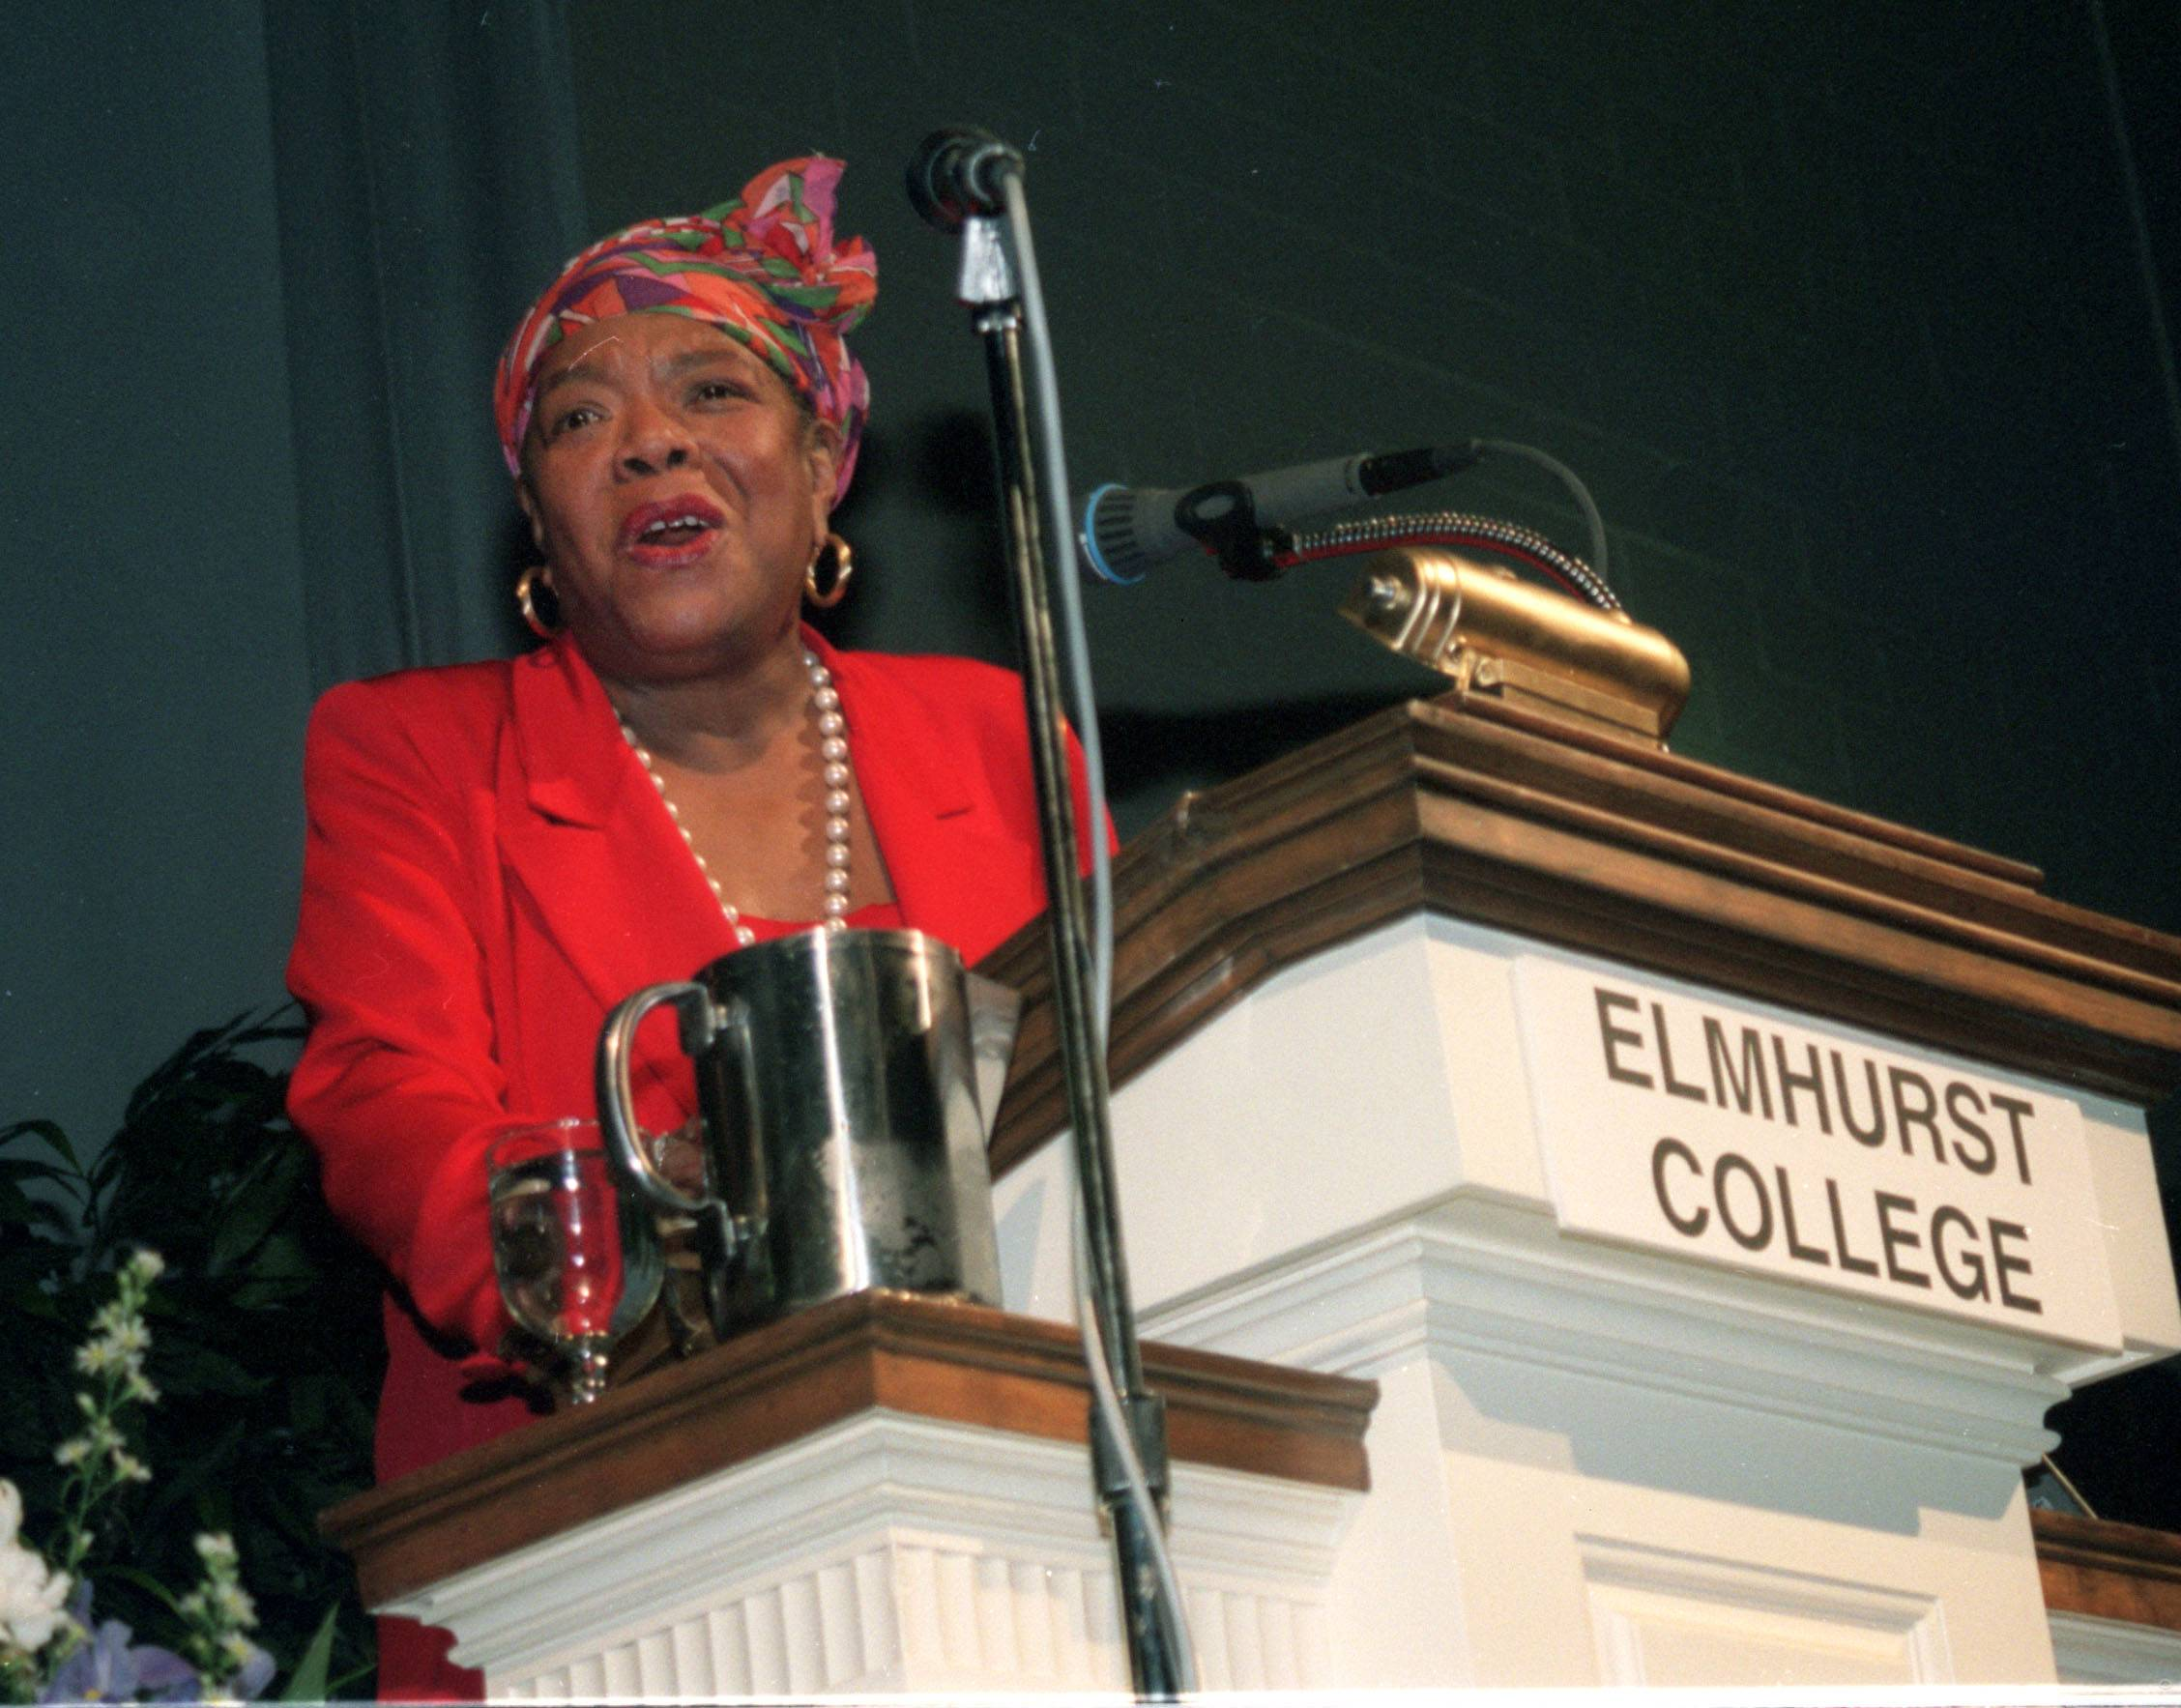 Maya Angelou speaks at Elmhurst College on February 11, 1996. She spoke at the college as part of the Martin Luther King Jr. Guest ship series.